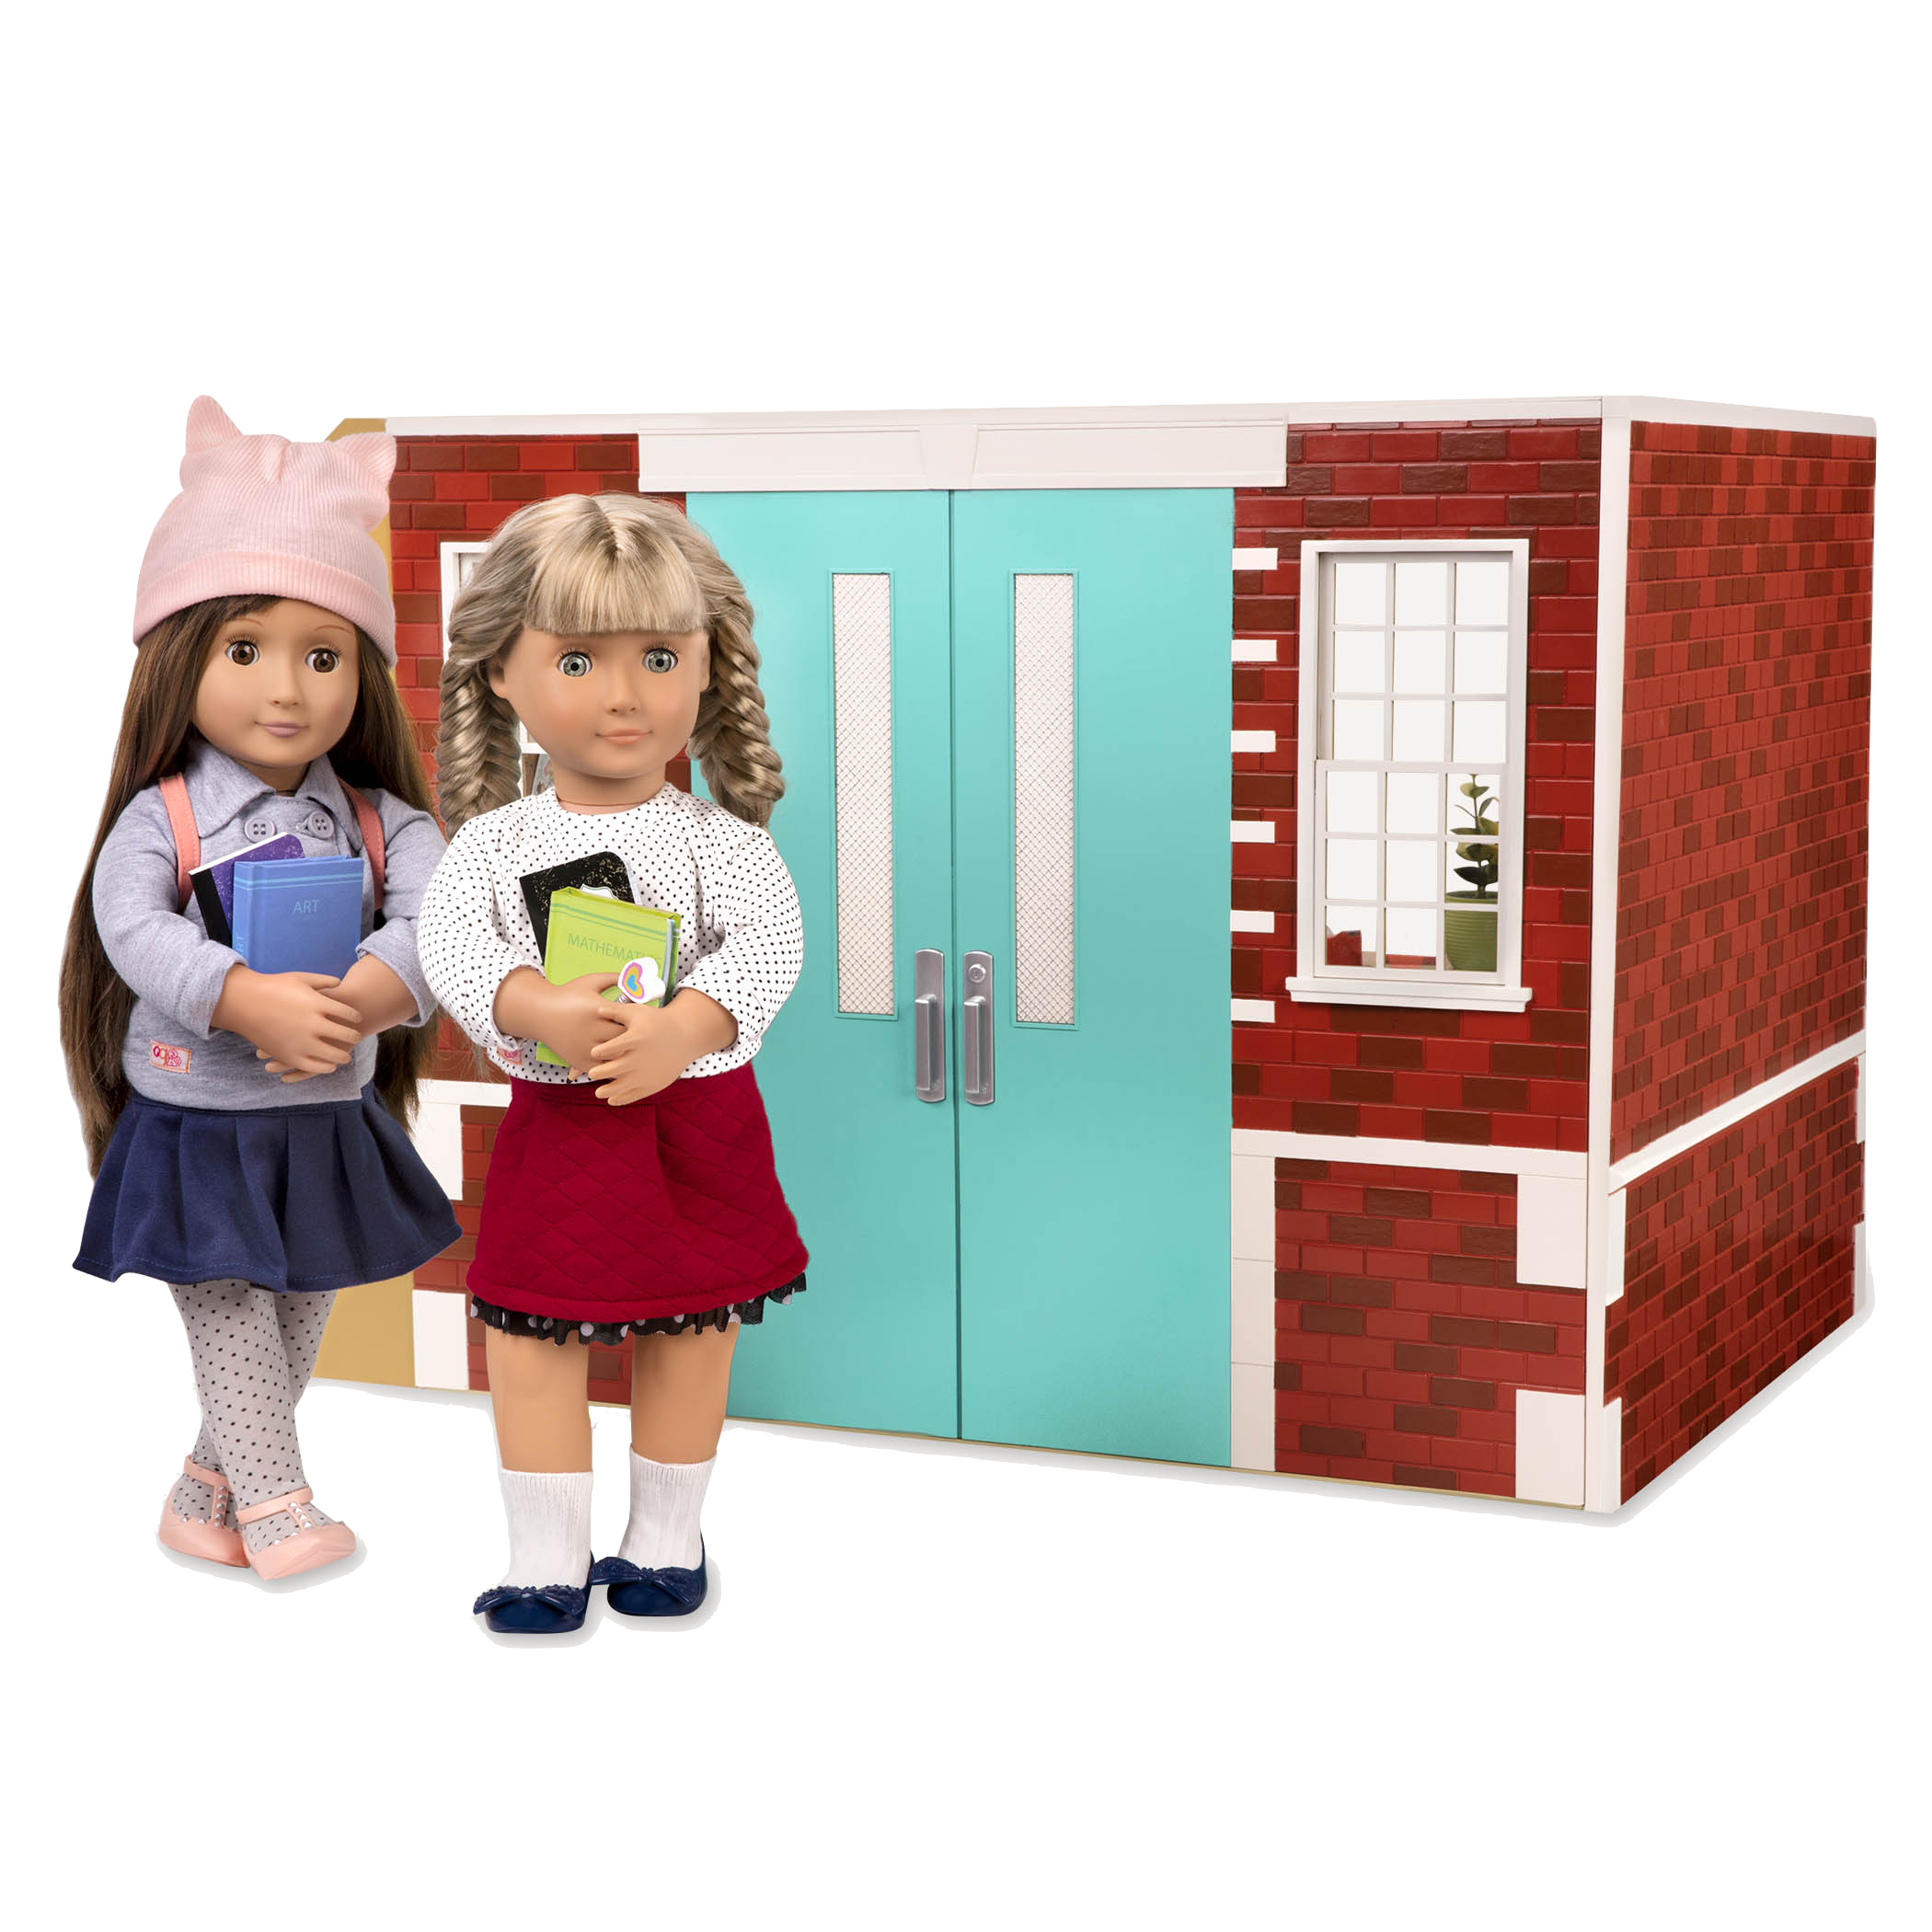 Exterior view of school playset